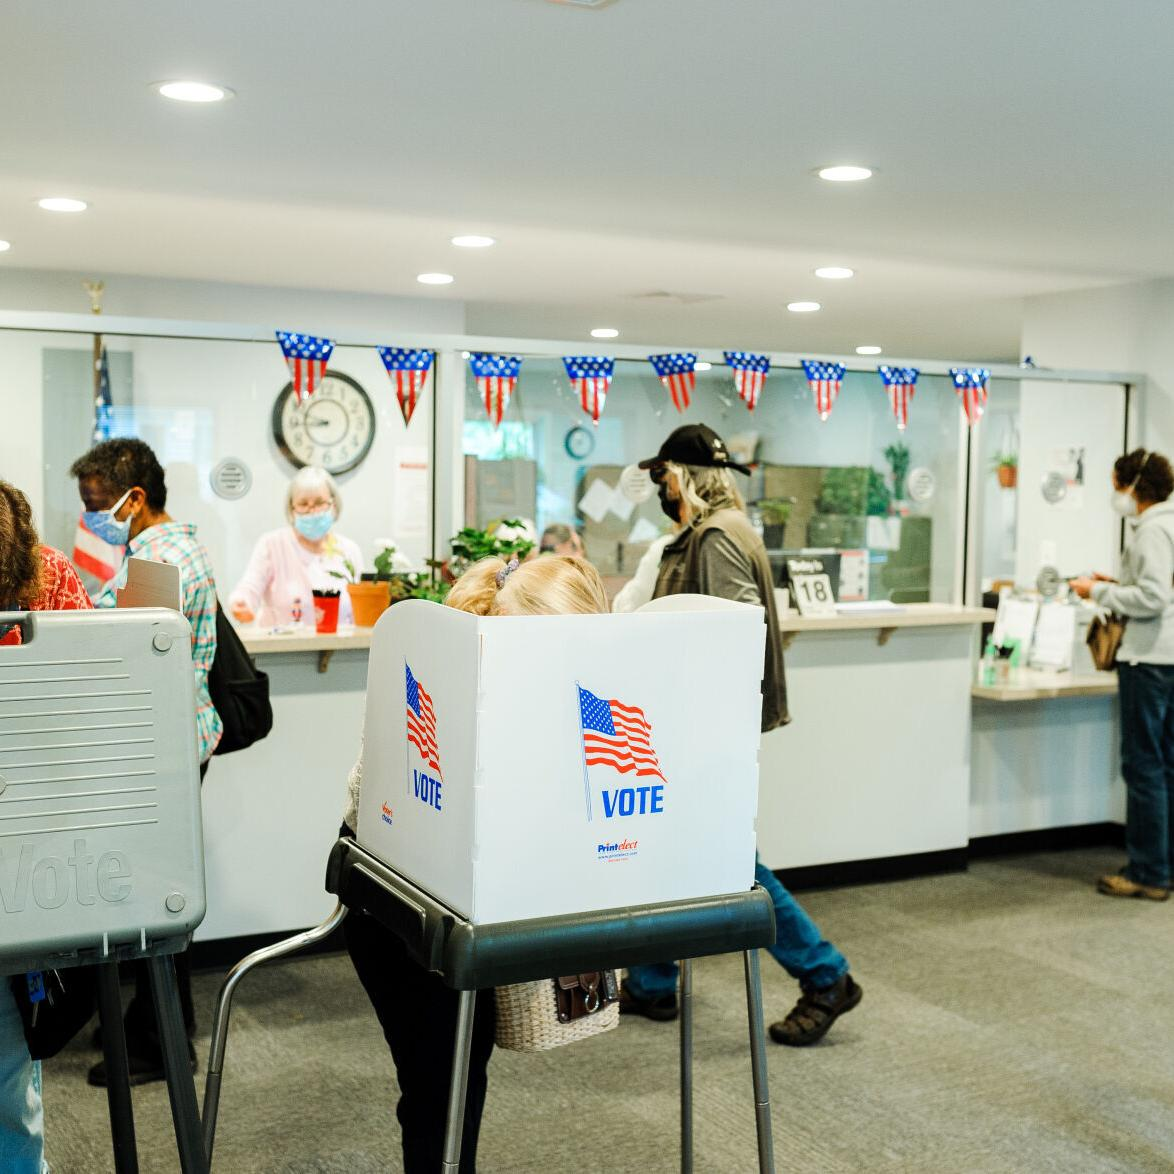 Additional in-person absentee voting sites open Monday, Oct. 18